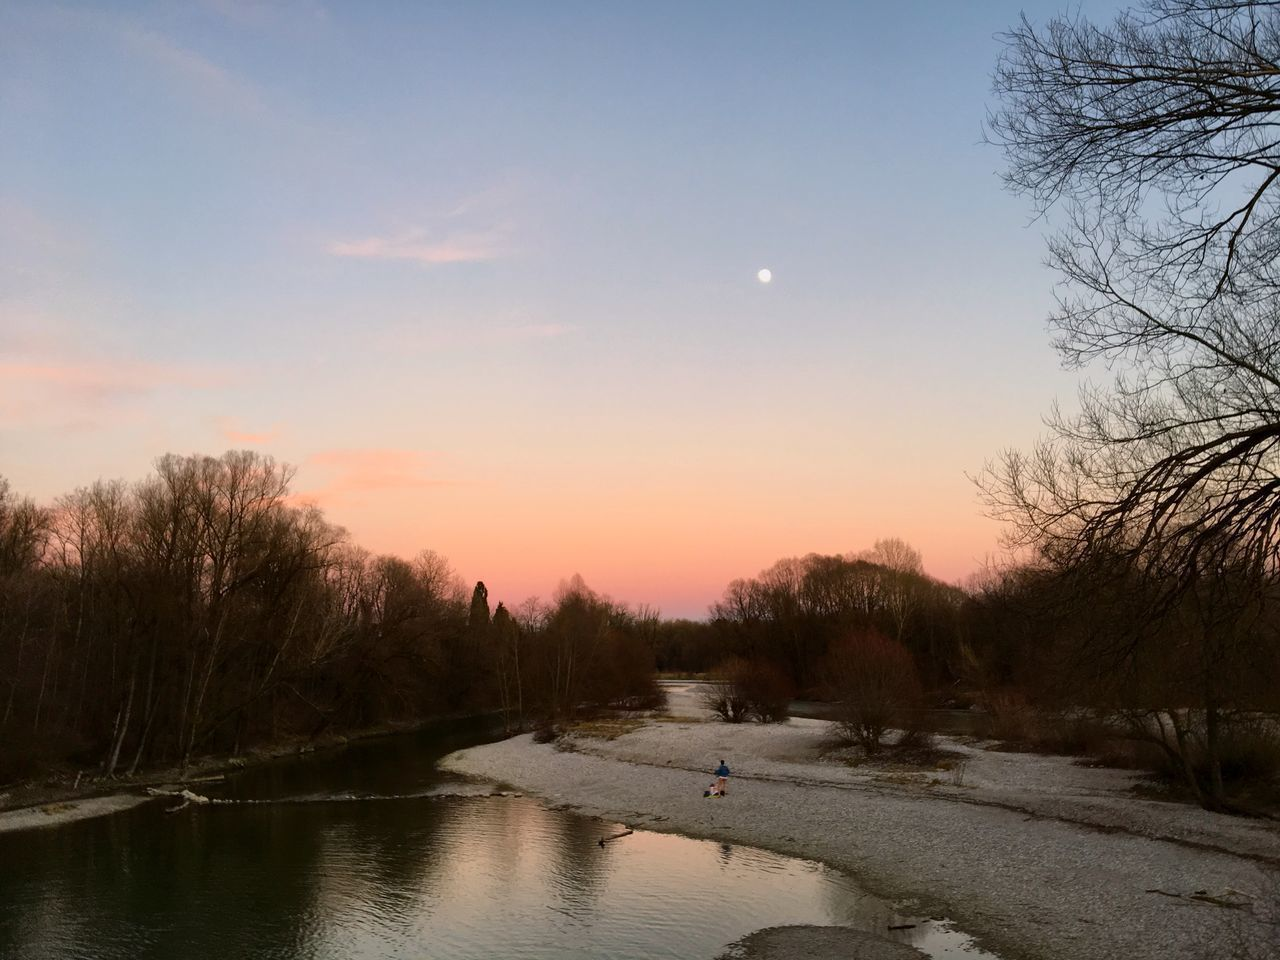 sunset, water, tree, nature, sky, river, beauty in nature, scenics, tranquil scene, tranquility, bare tree, reflection, outdoors, no people, moon, landscape, nautical vessel, day